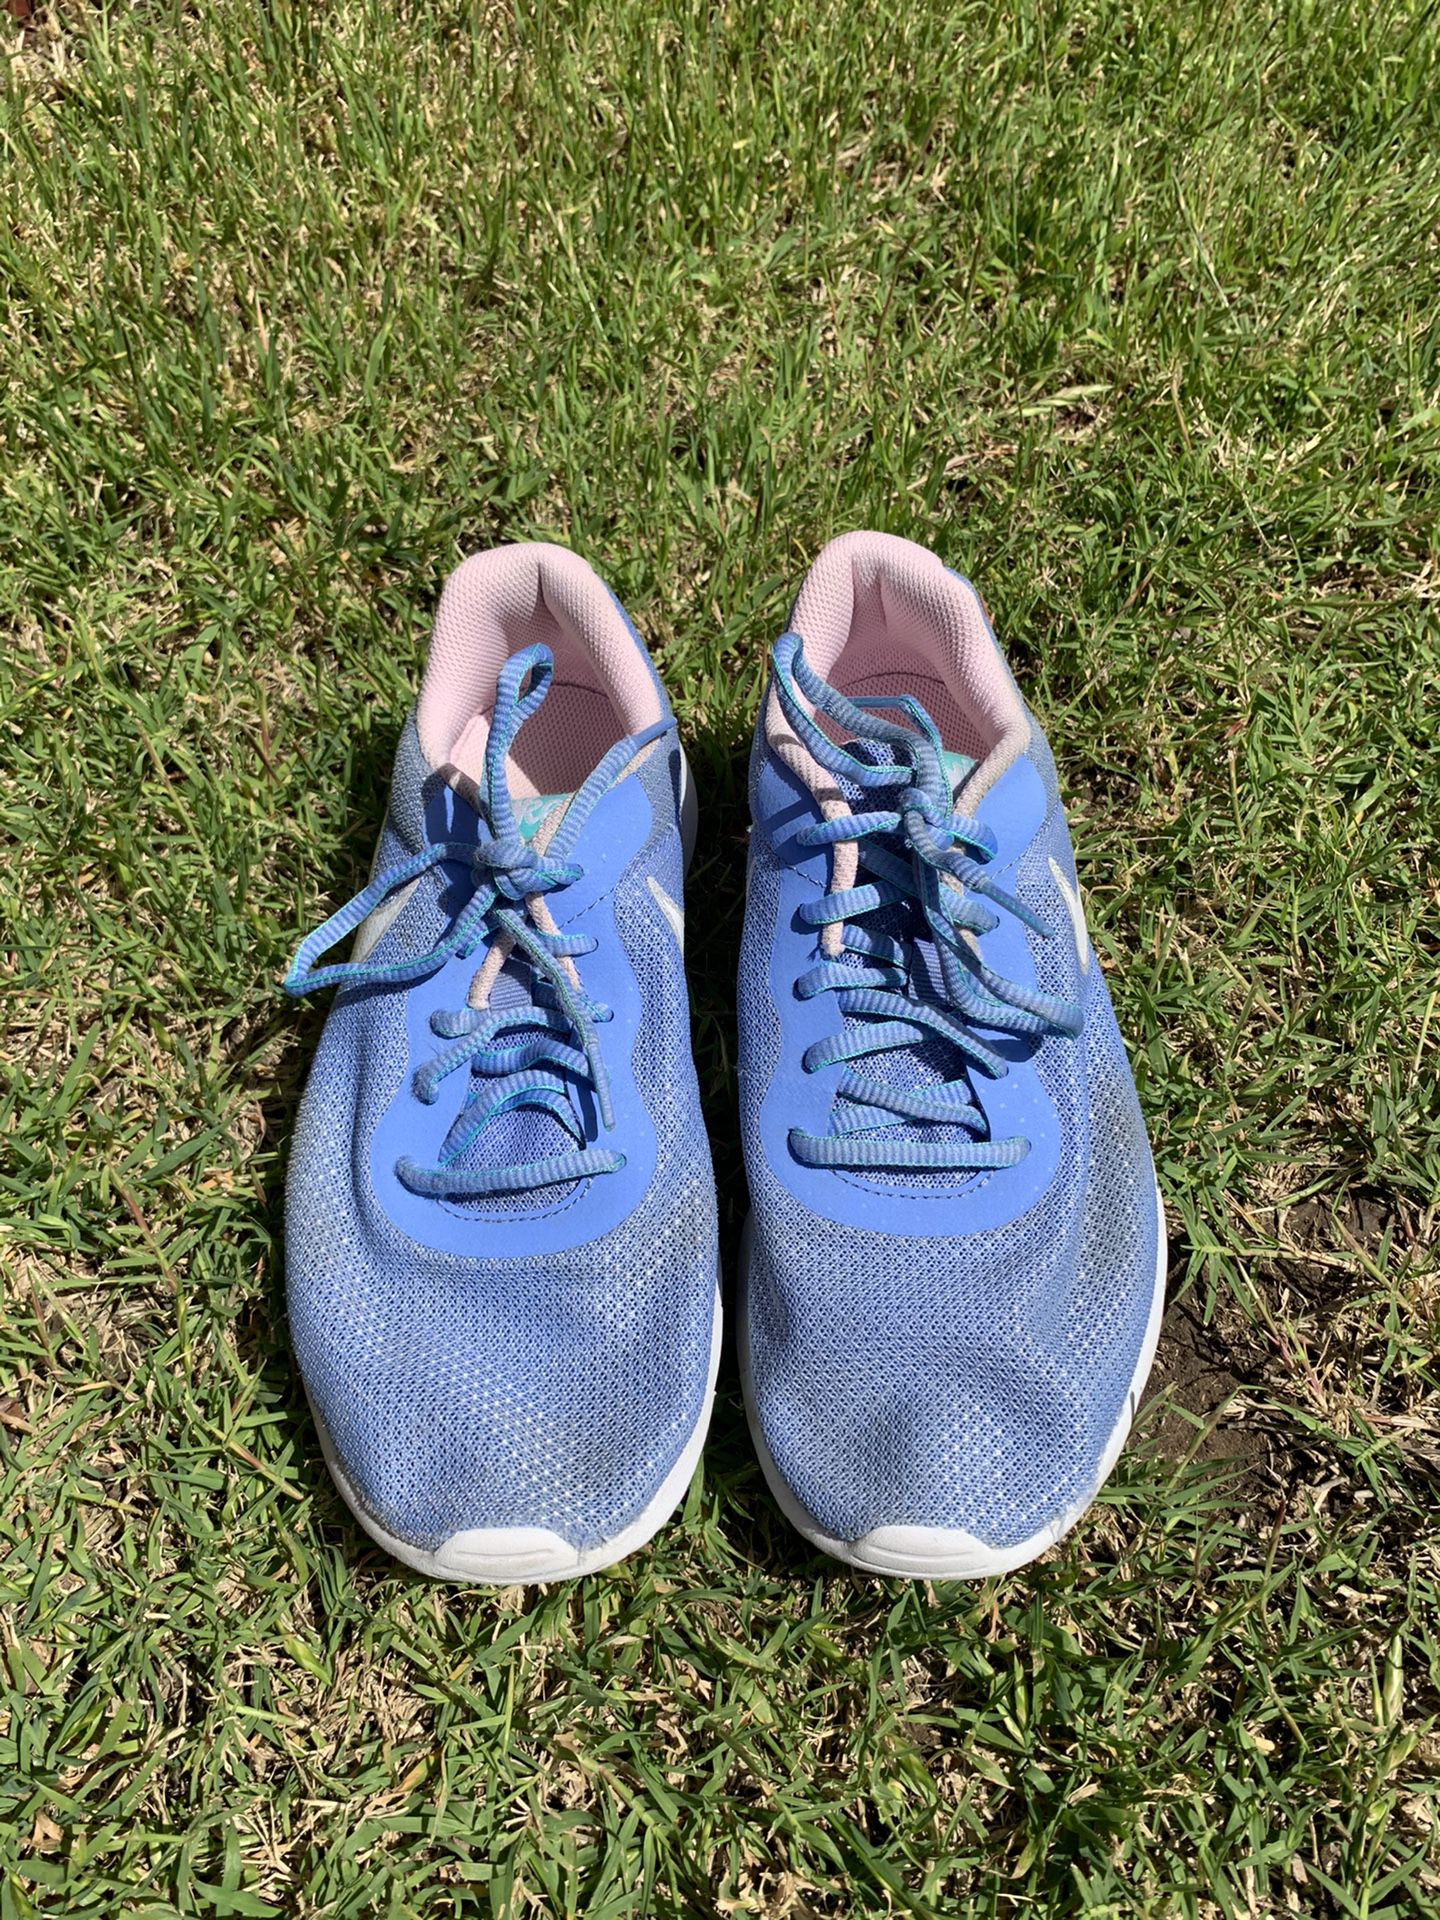 Girls Shoes Size 6Y